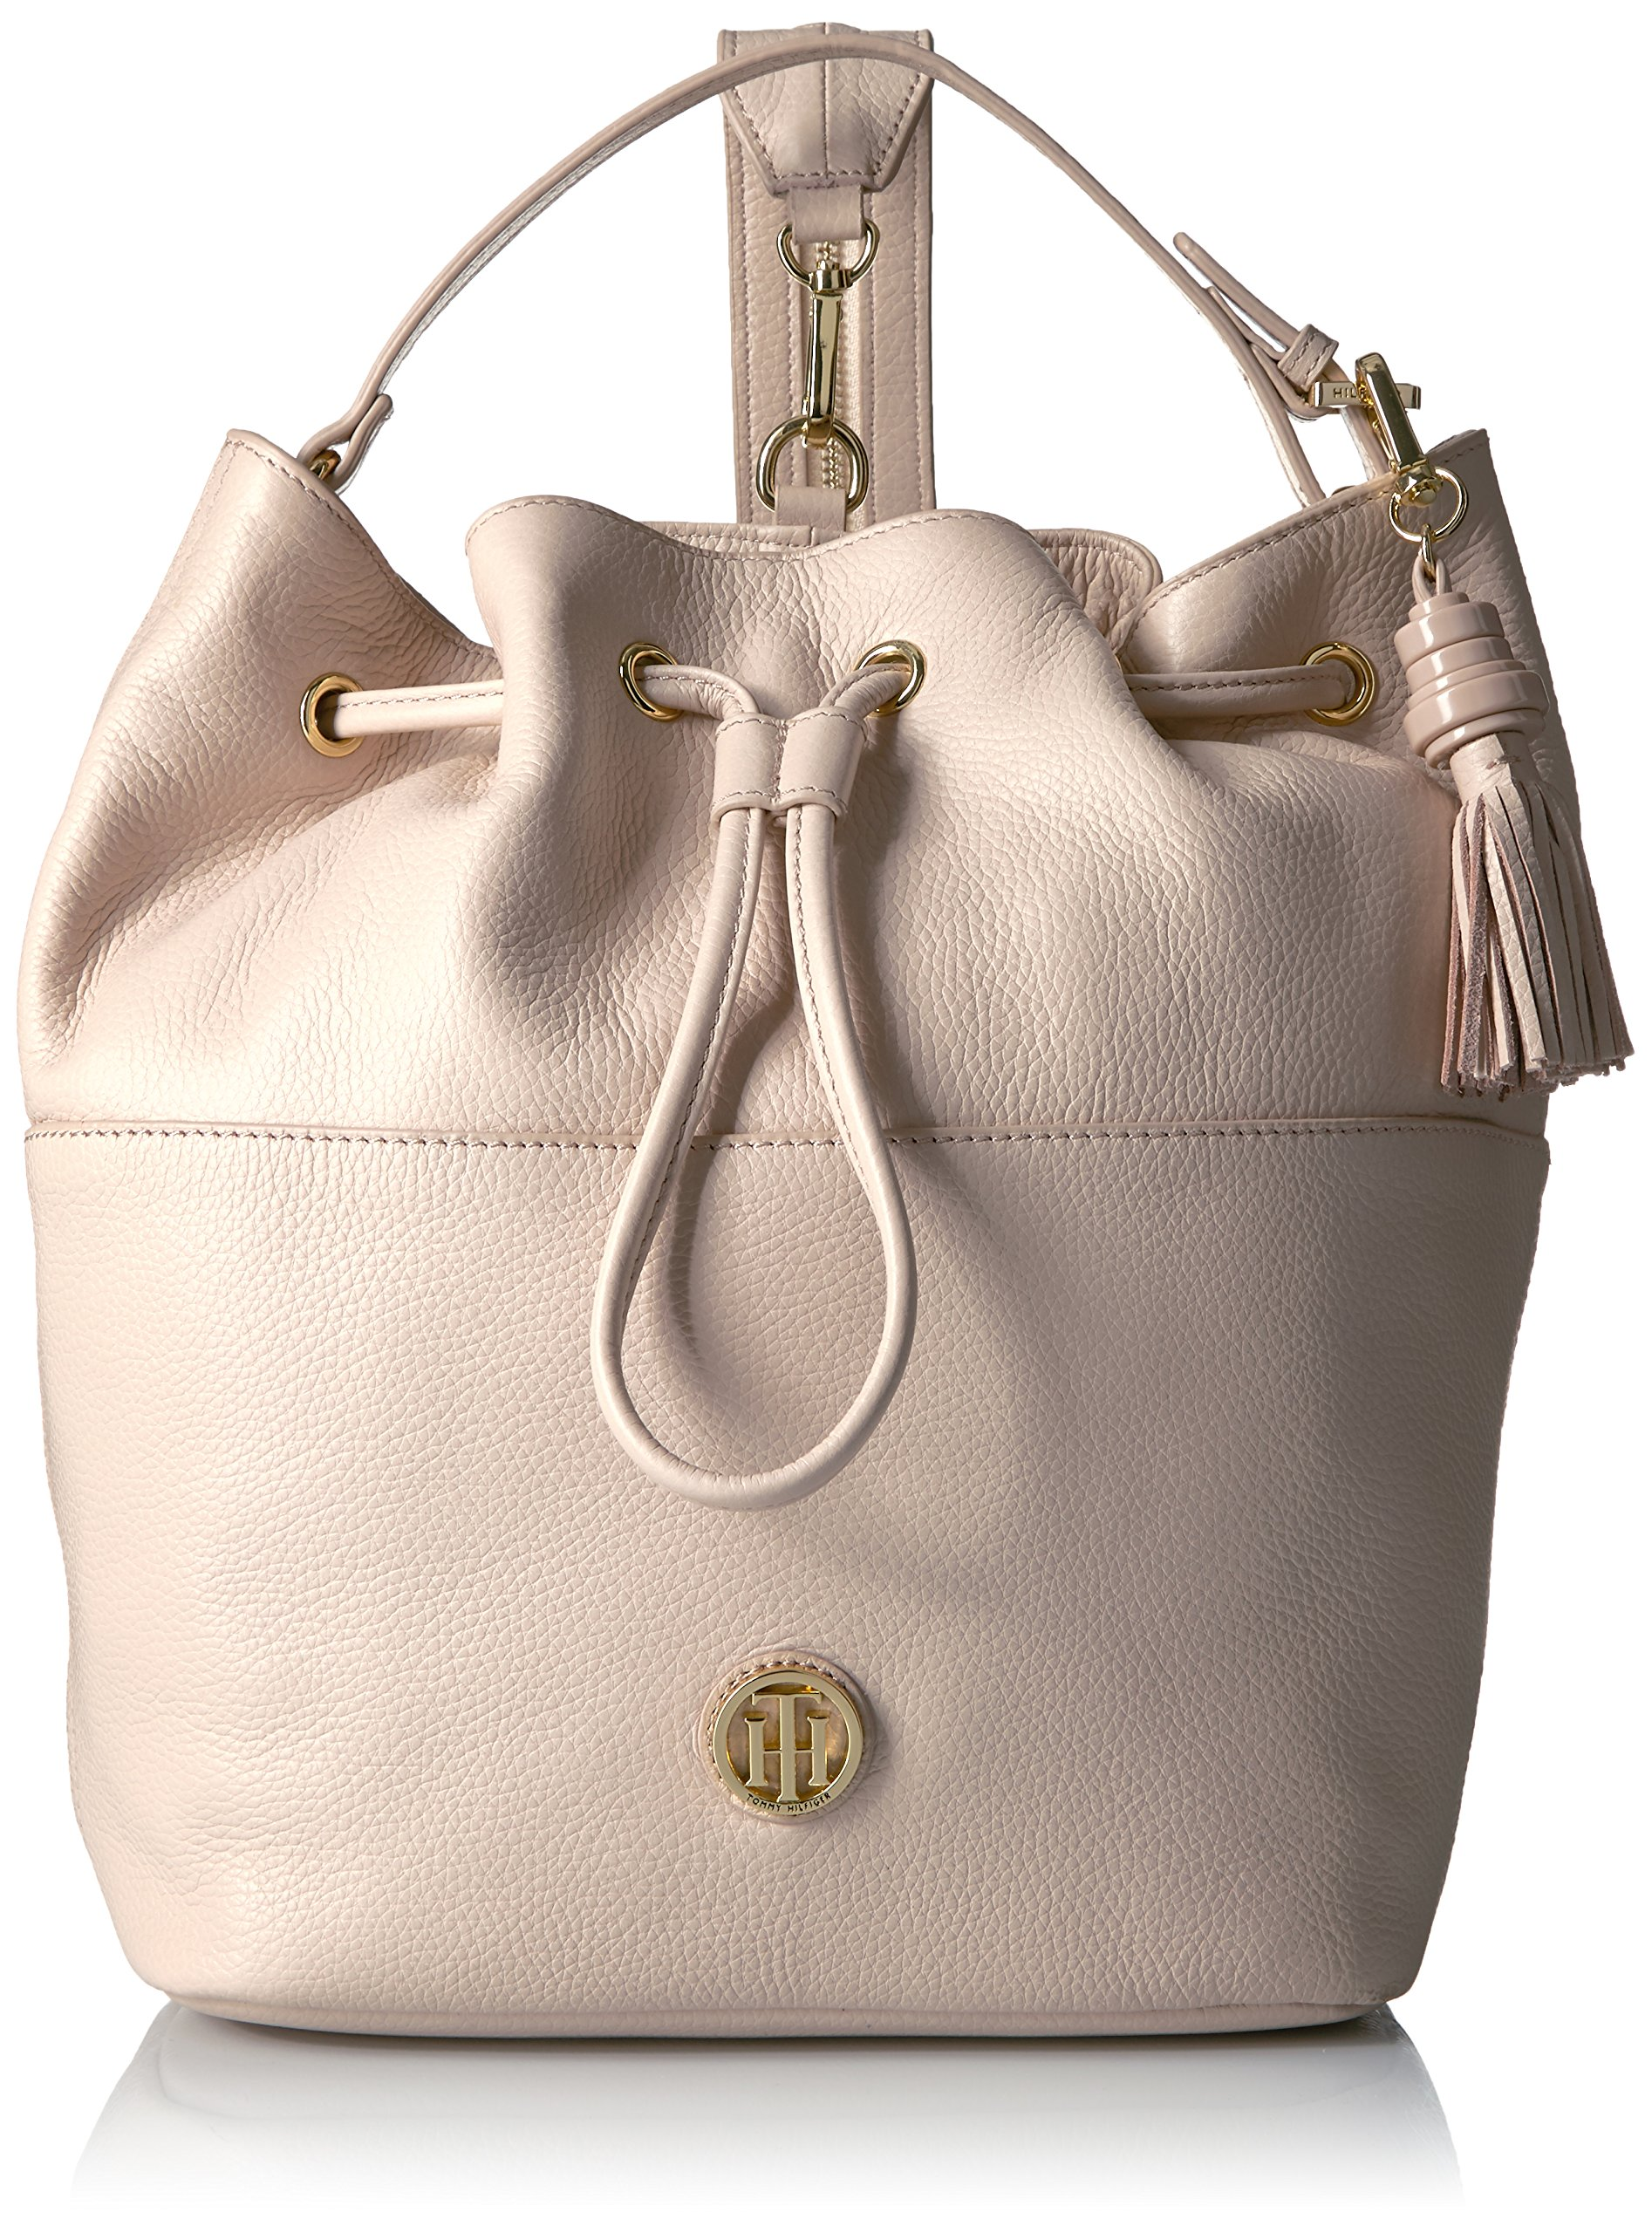 Tommy Hilfiger Women's Backpack TH Summer of Love, Blush